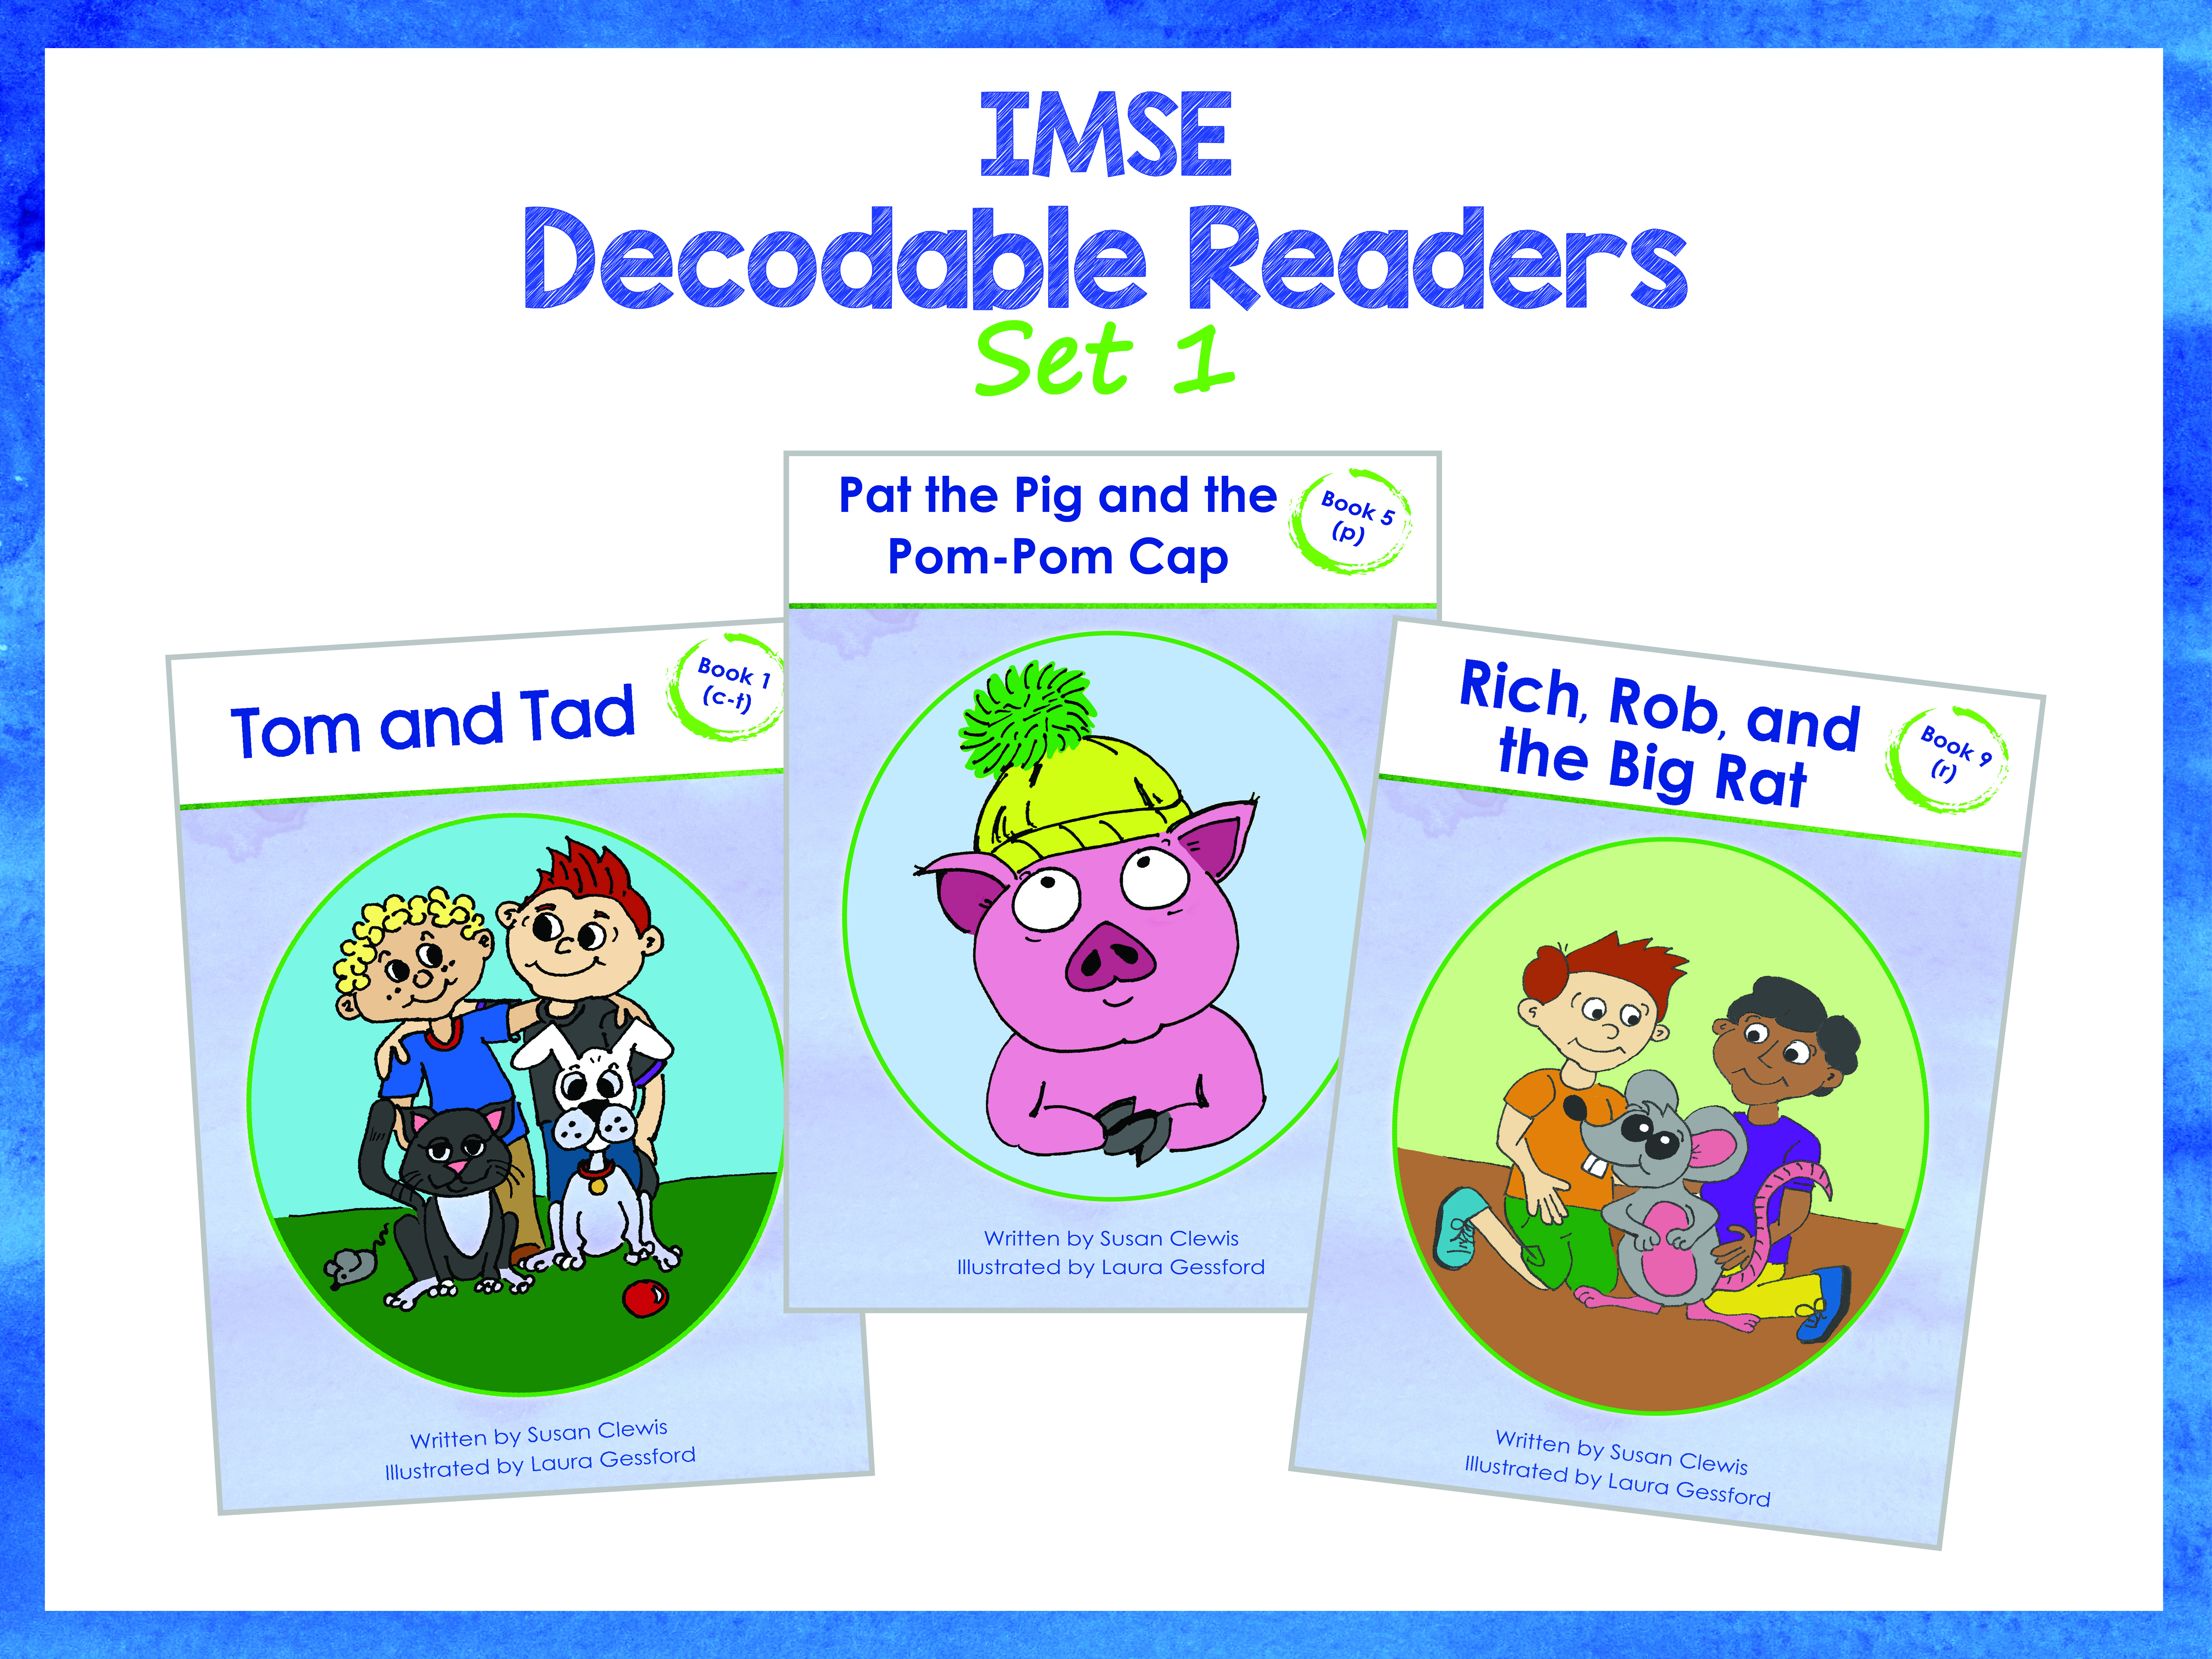 IMSE Decodable Readers Set 1 - Printed